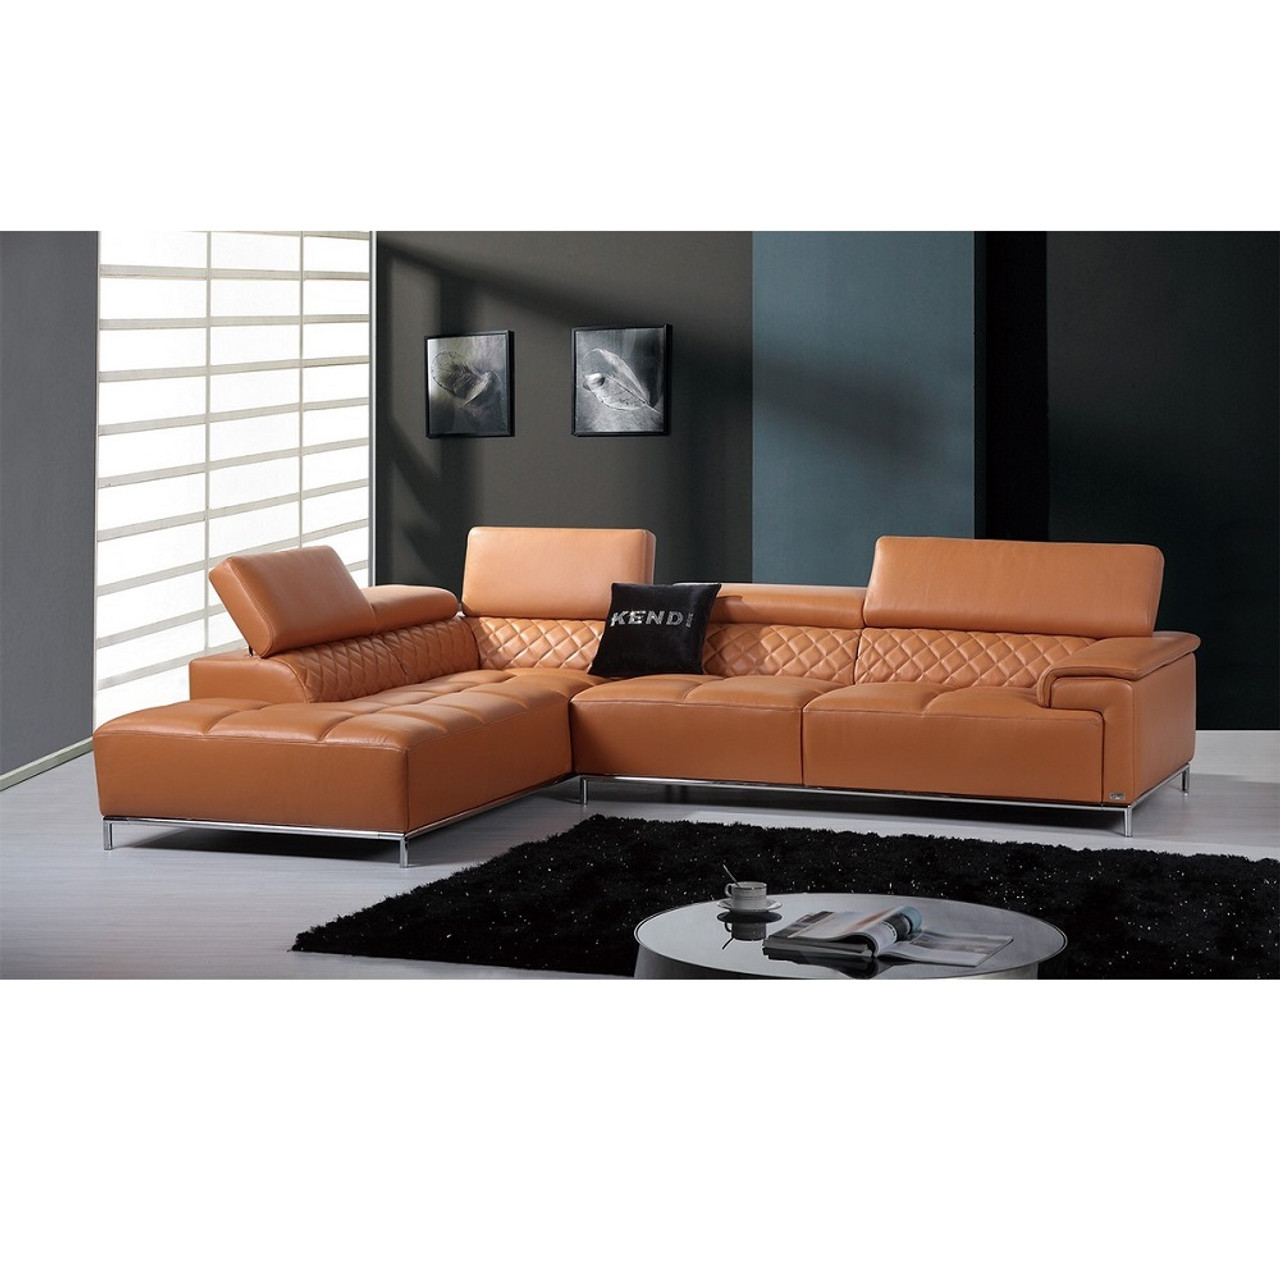 Divani Casa Citadel Modern Orange Italian Leather Sectional Sofa Lounge La